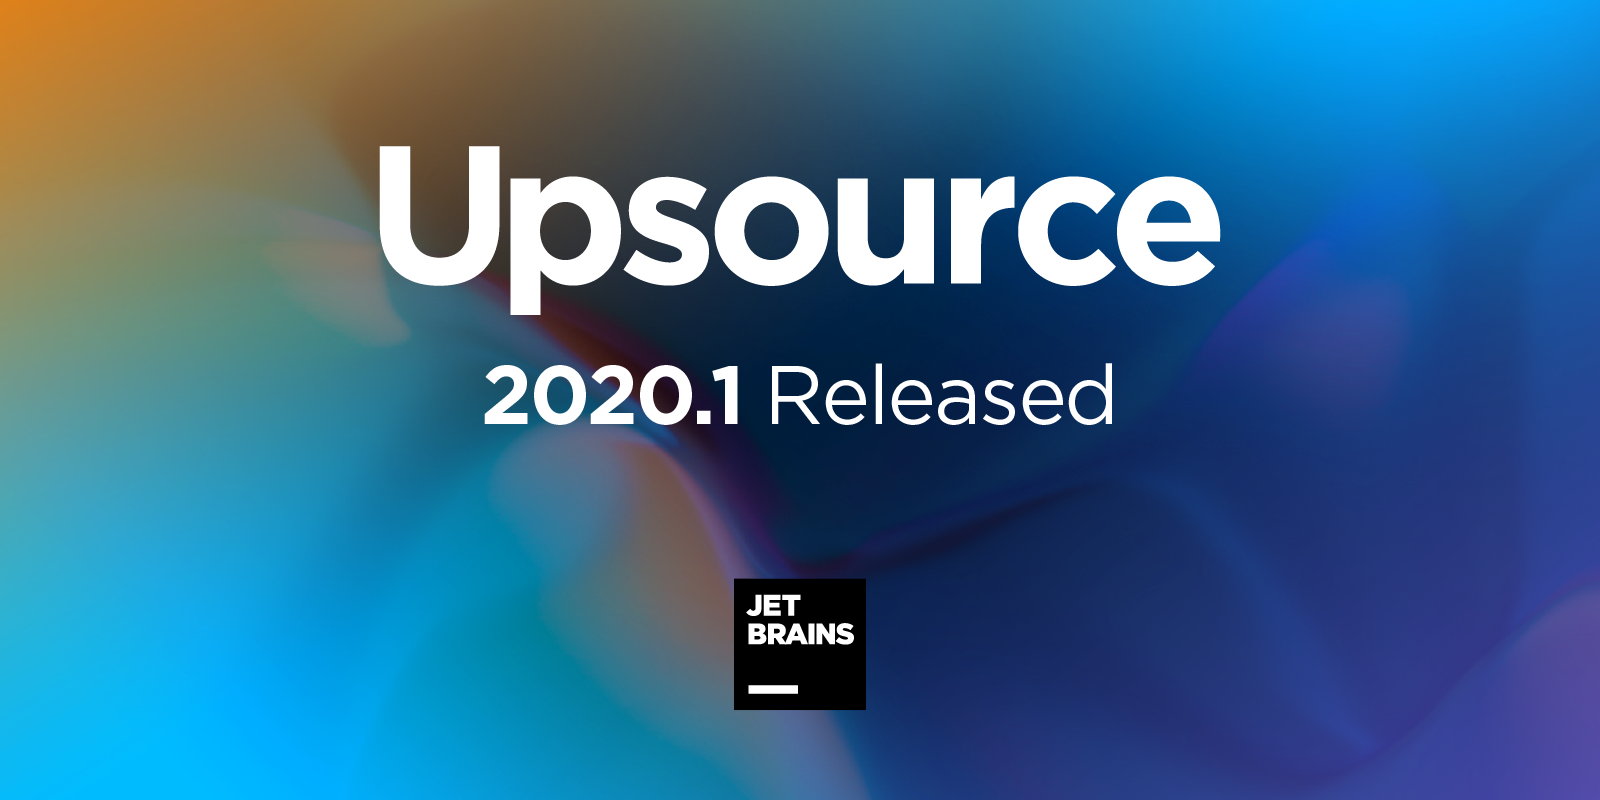 Upsource 2020.1 est disponible